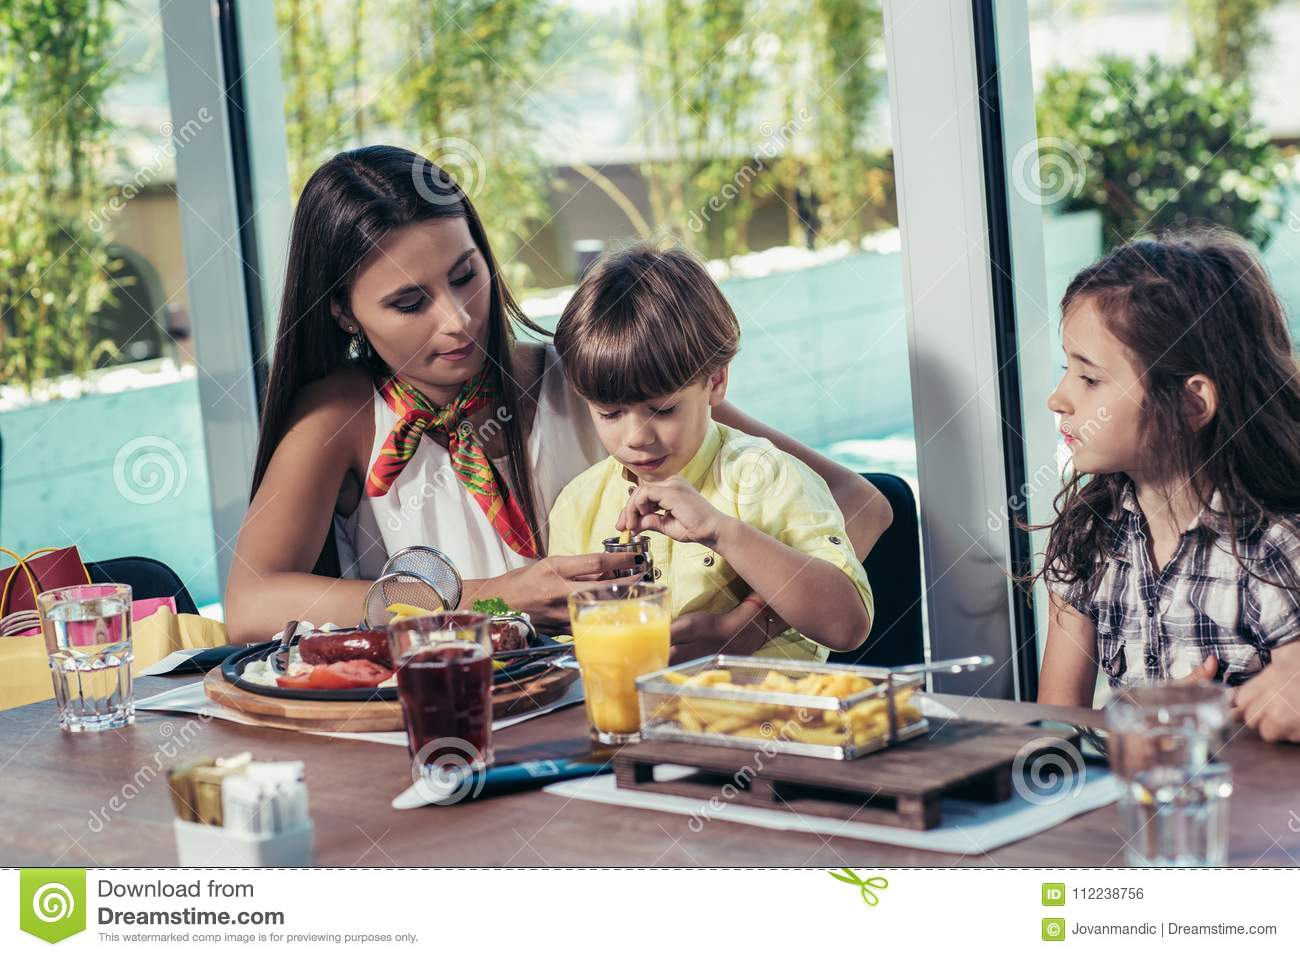 Mother with children enjoying meal in restaurant.